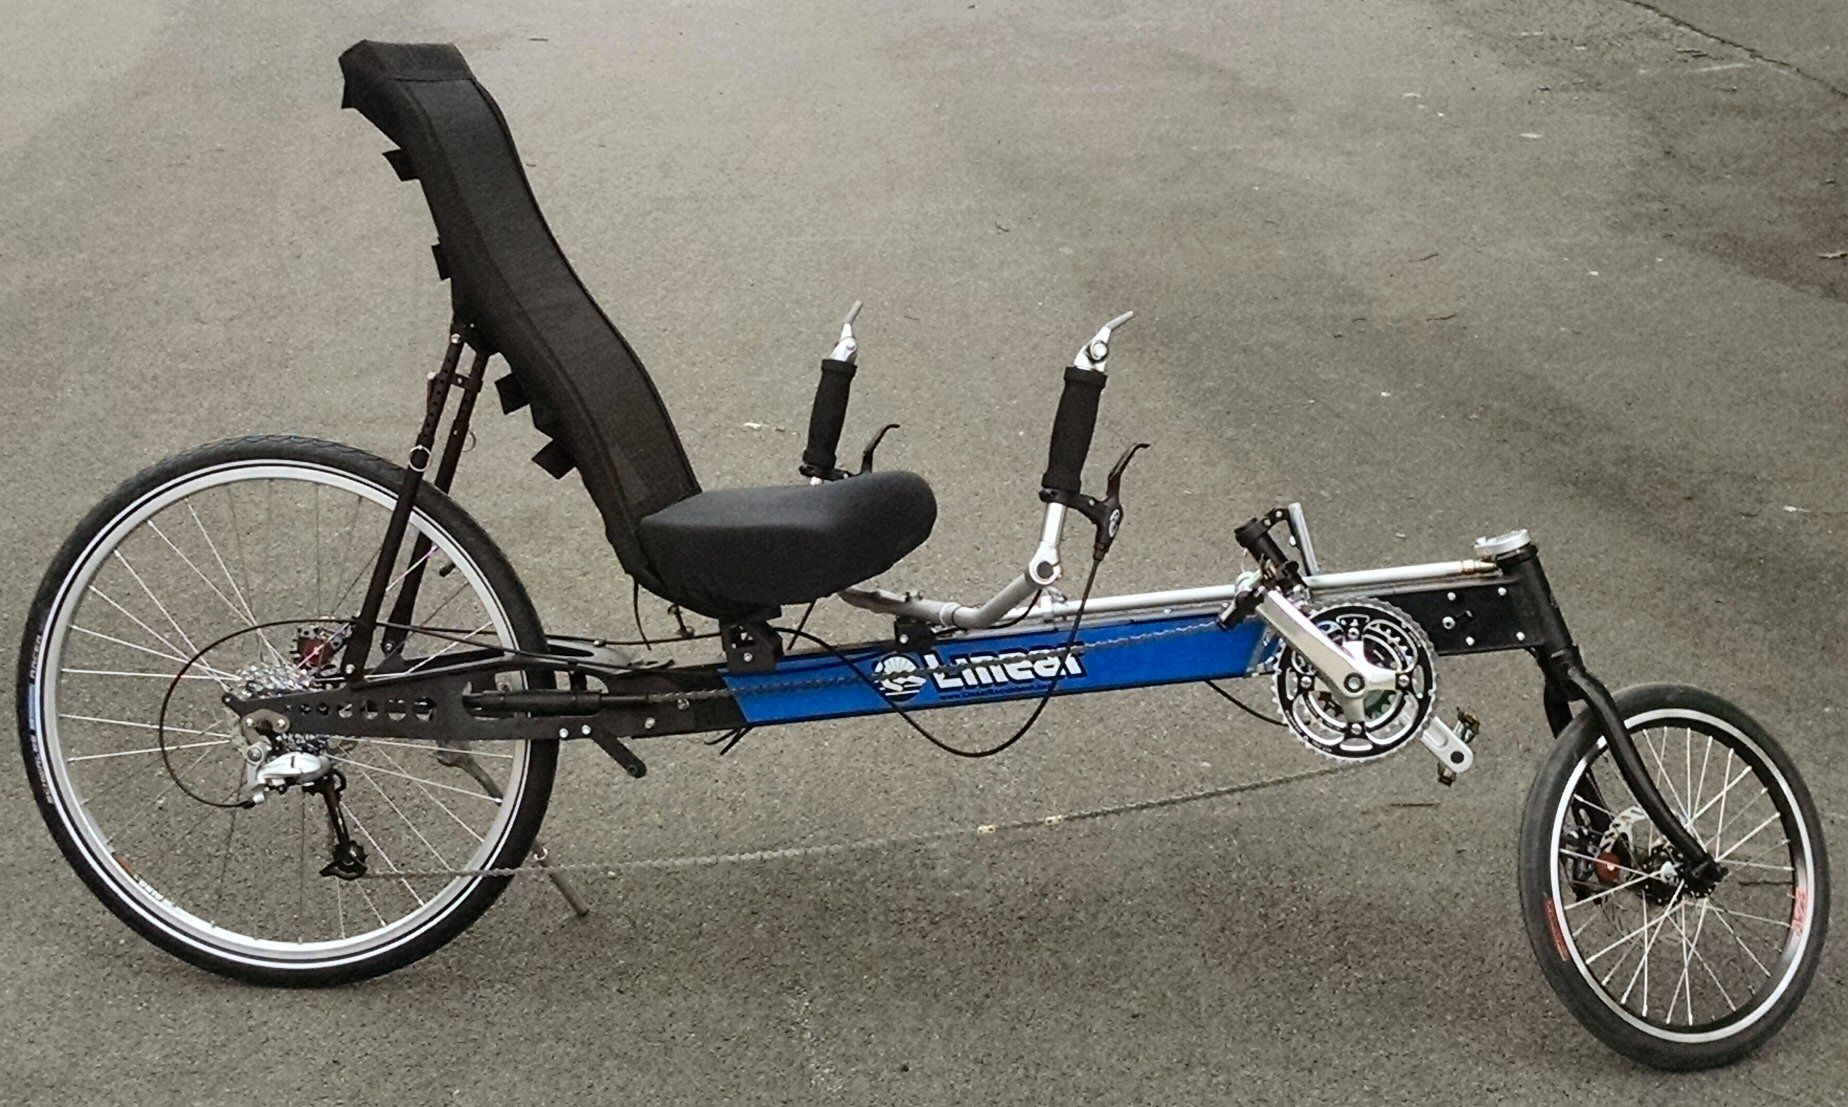 Linear Minear Lwb Now 5 Tall Riders Have Choices Recumbent Bicycle Bicycle Design Bicycle